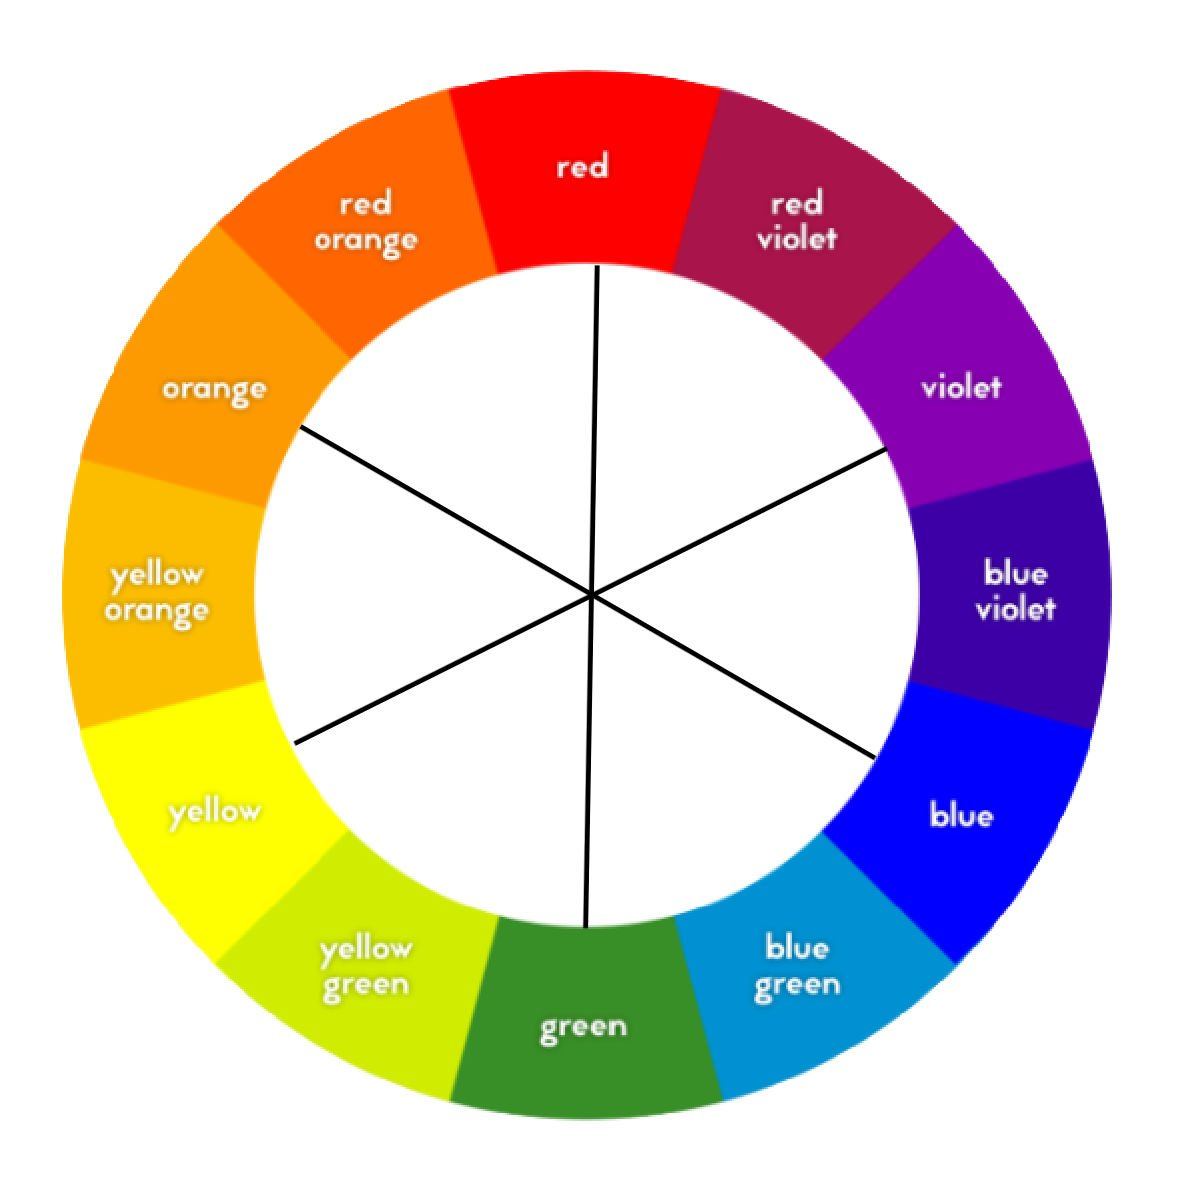 picture of a color wheel featuring colors in red, red violet, violet, blue violet, blue, blue green, green, yellow green, yellow, yellow orange, orange, and red orange.